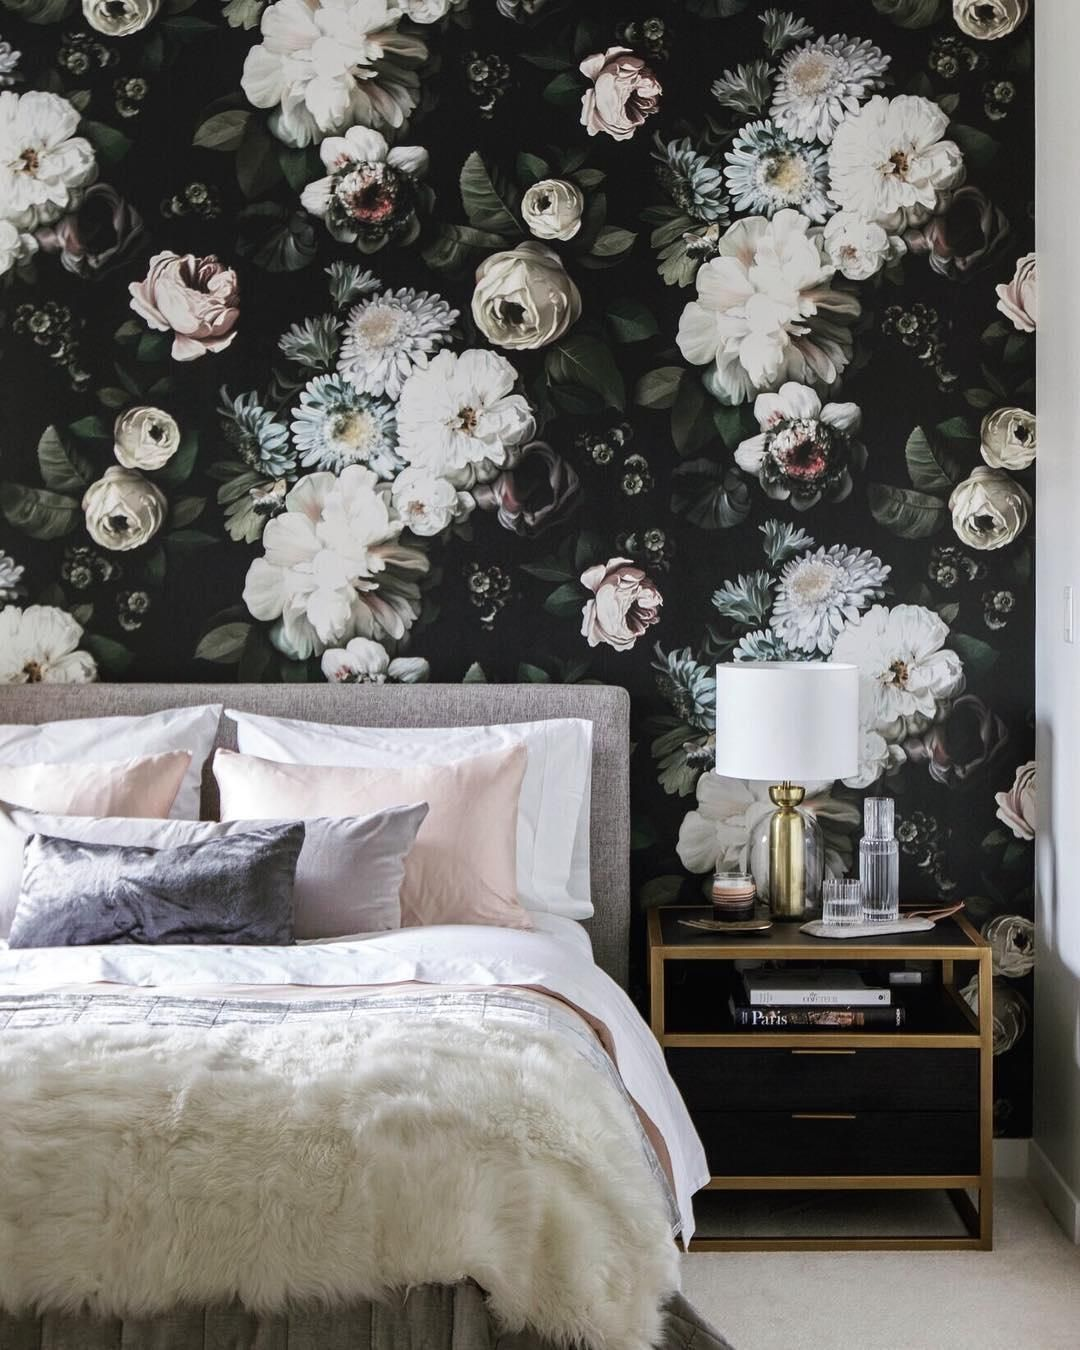 Ellie Cashman Dark Floral Wallpaper Floral Wallpaper Bedroom